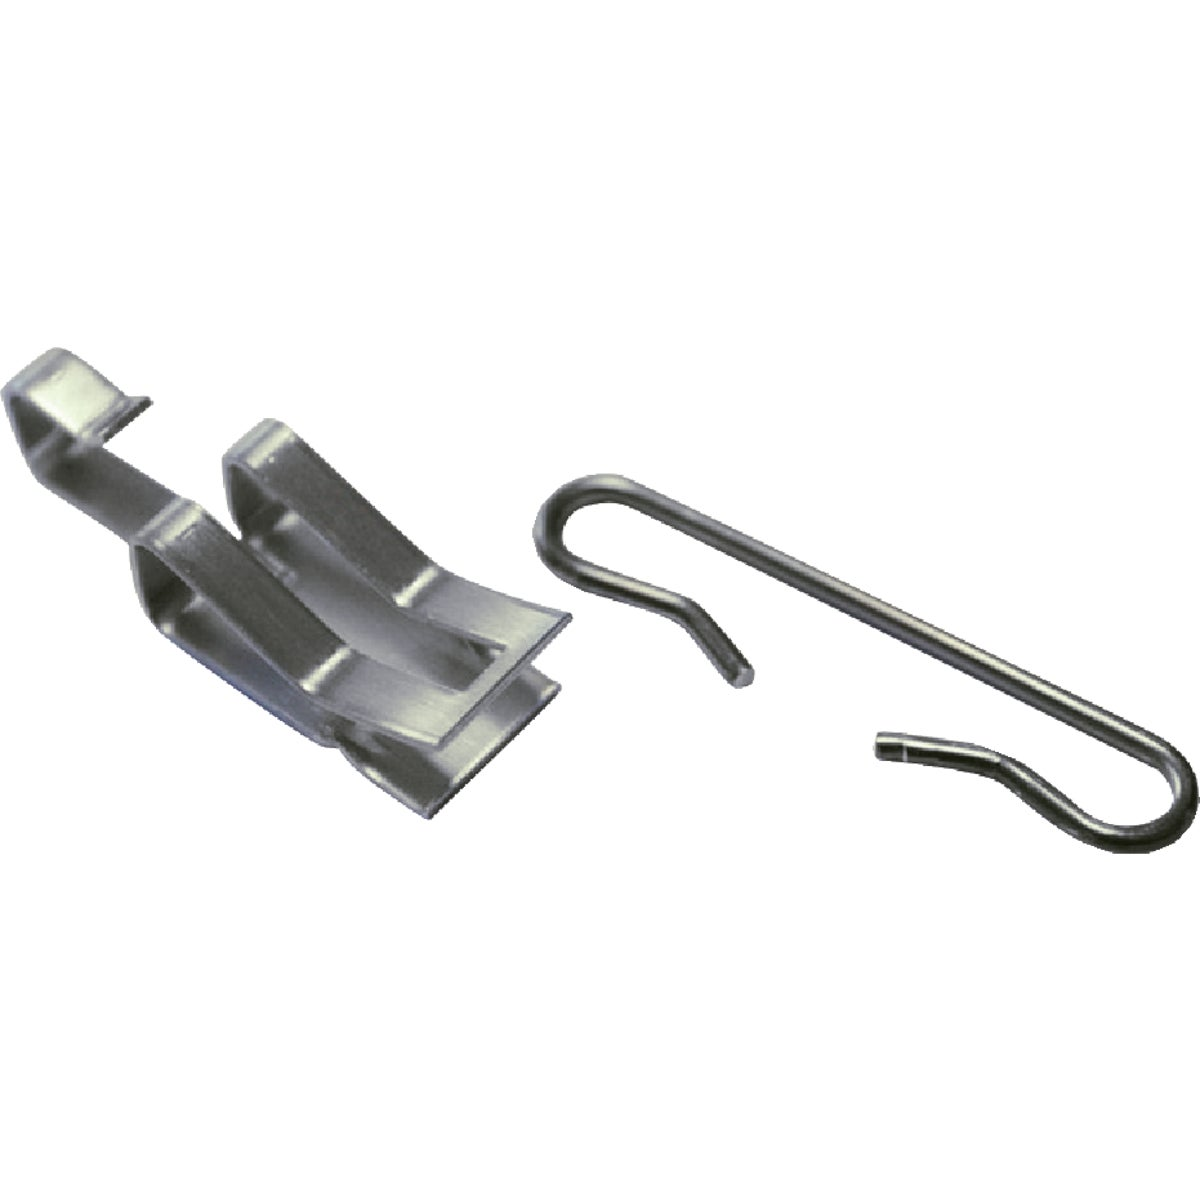 ROOF CABLE CLIPS